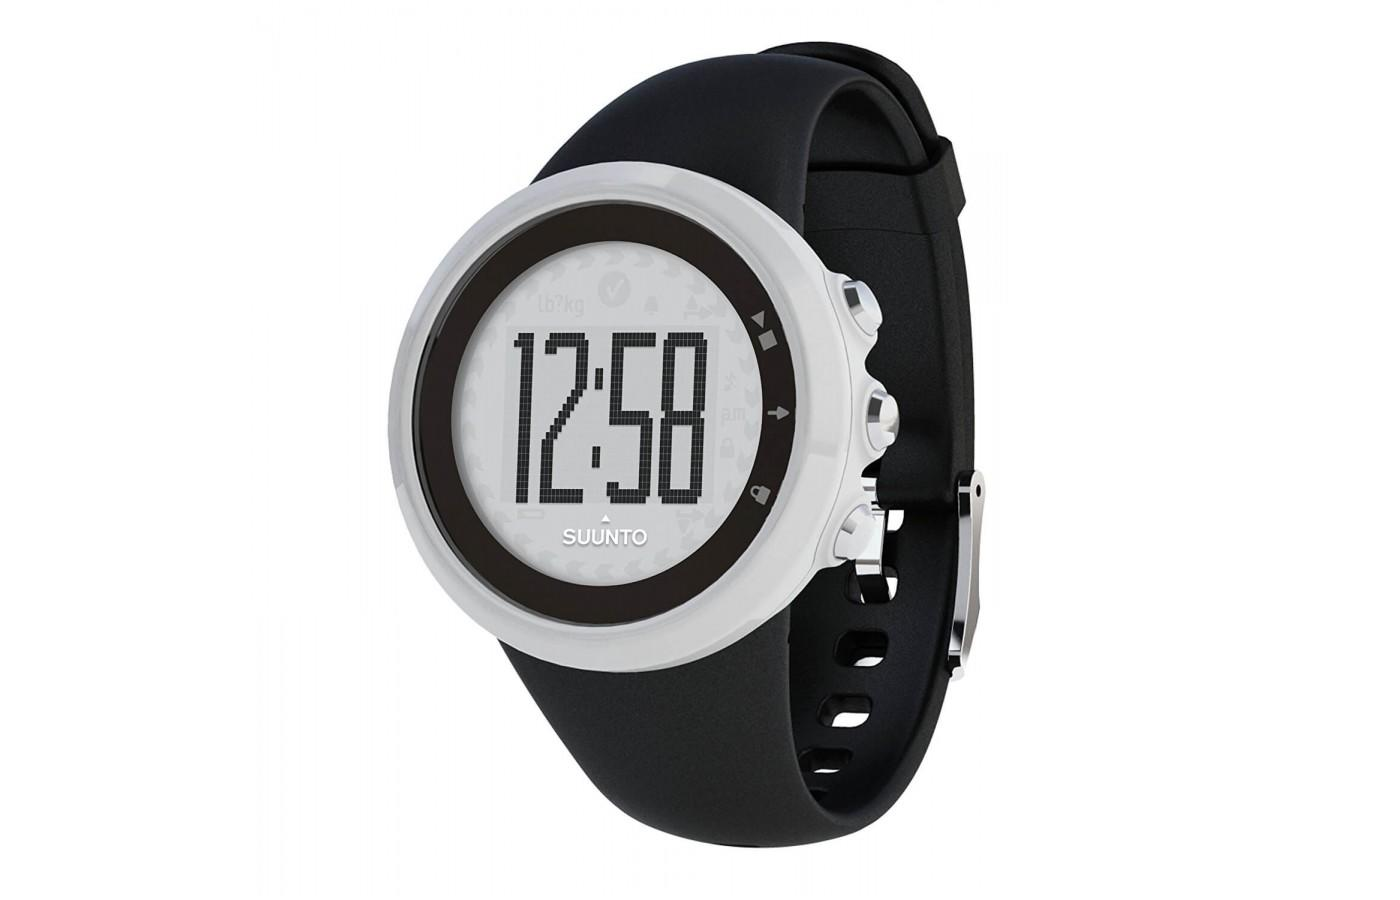 Suunto M1 provides time of day